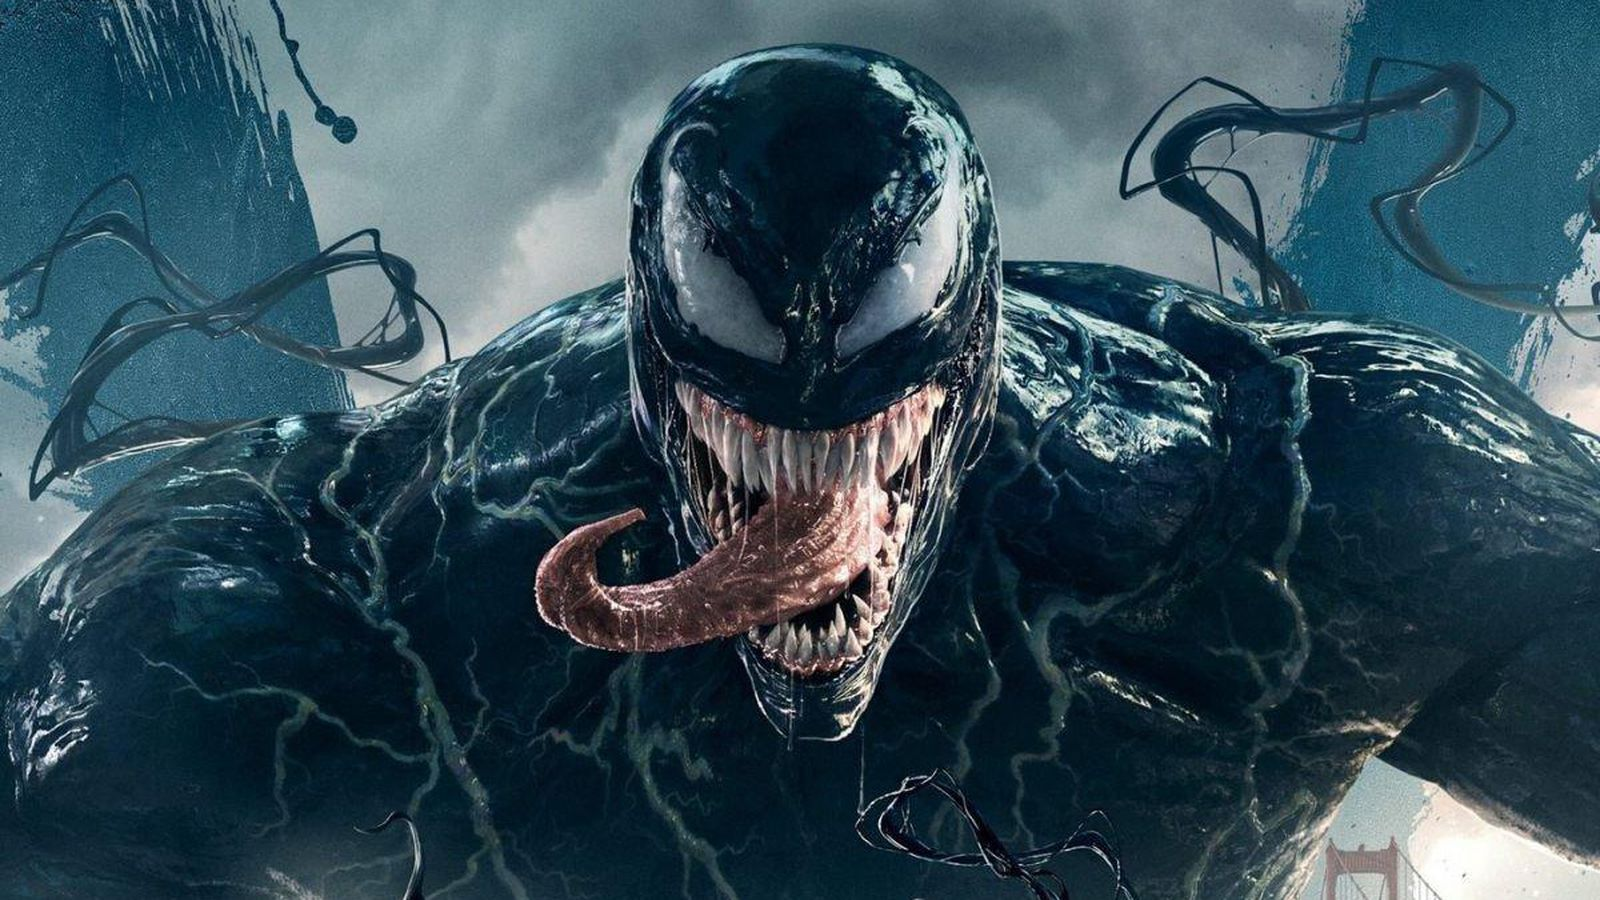 Watch the official trailer for Venom sequel, Let There Be Carnage